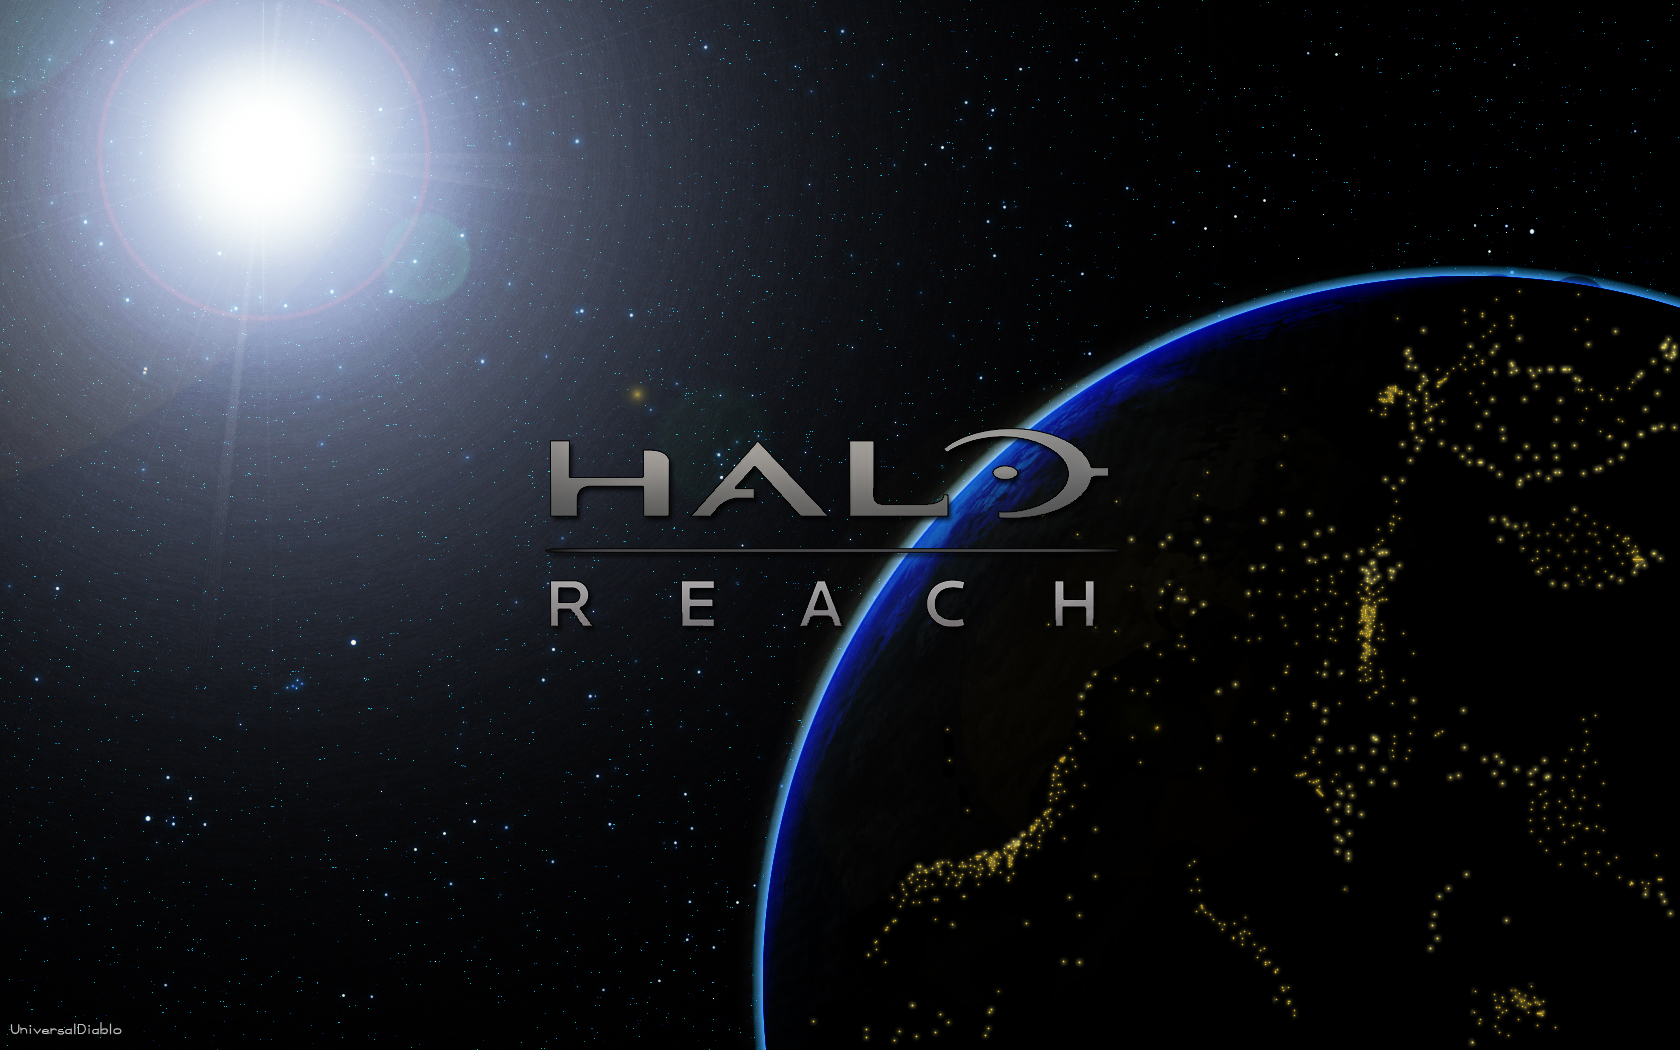 Epic Halo Reach Wallpapers 1680x1050